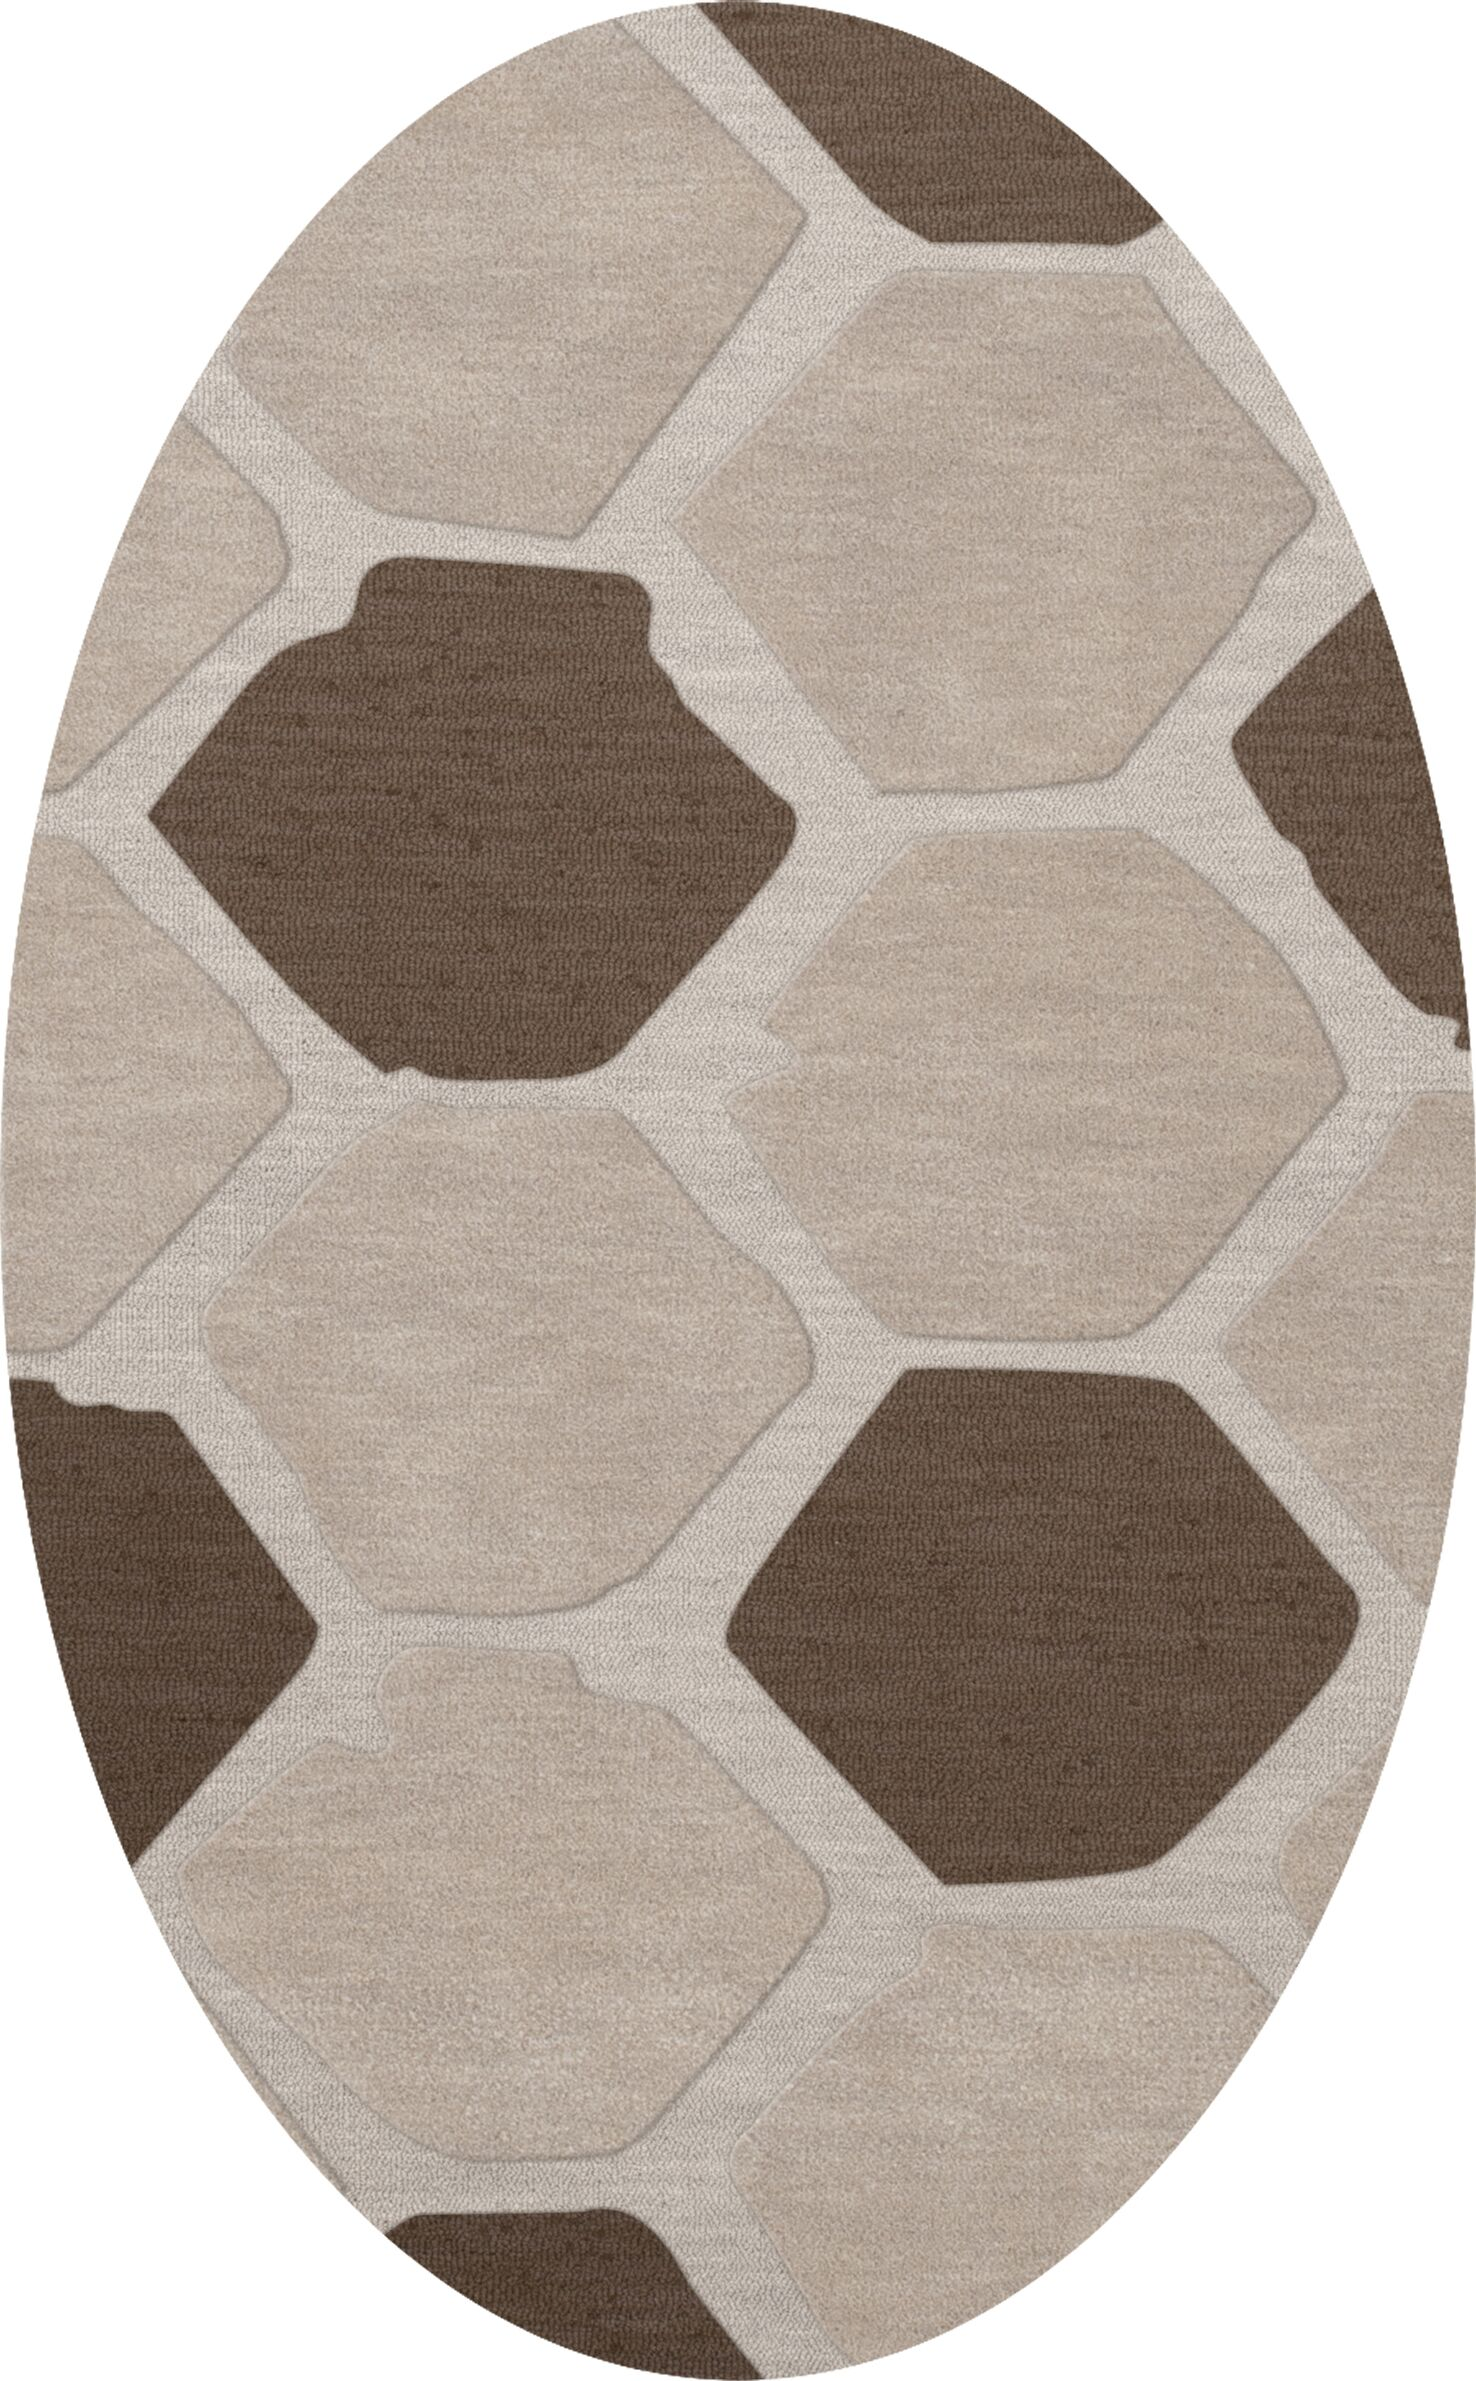 Dunson Wool Croissant Area Rug Rug Size: Oval 10' x 14'